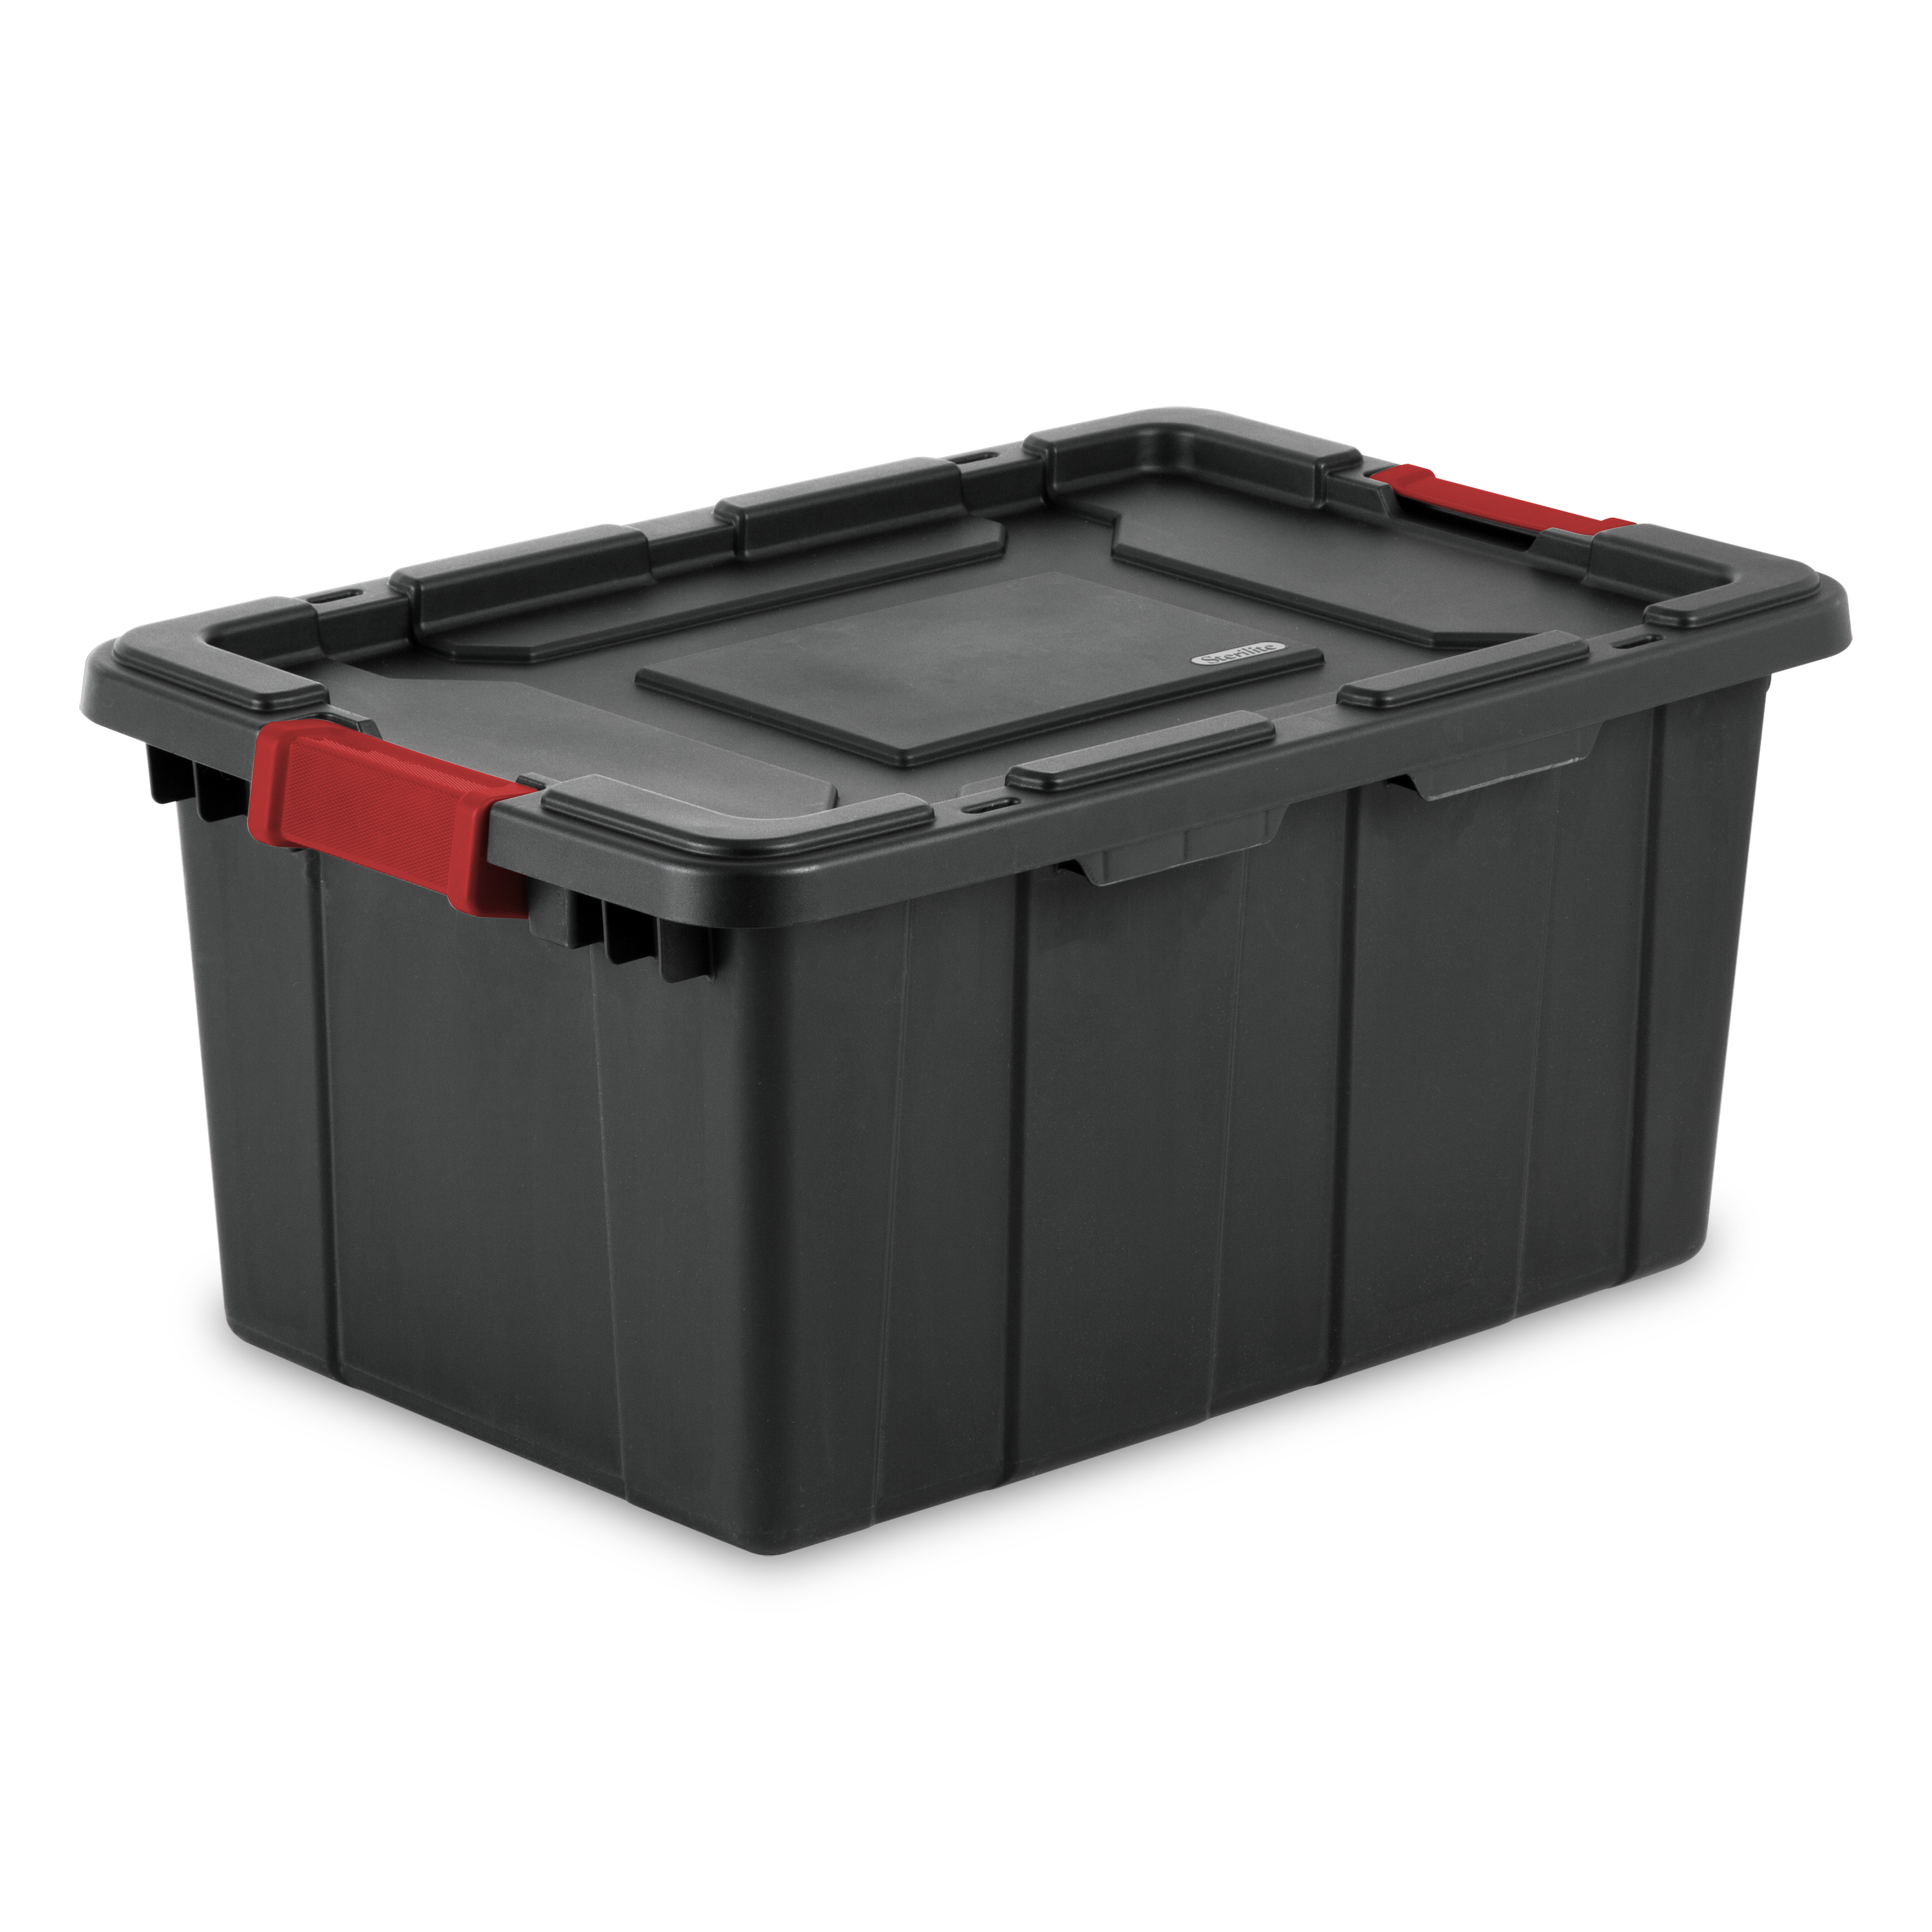 57 L Industrial Tote, Black (Available In A Case